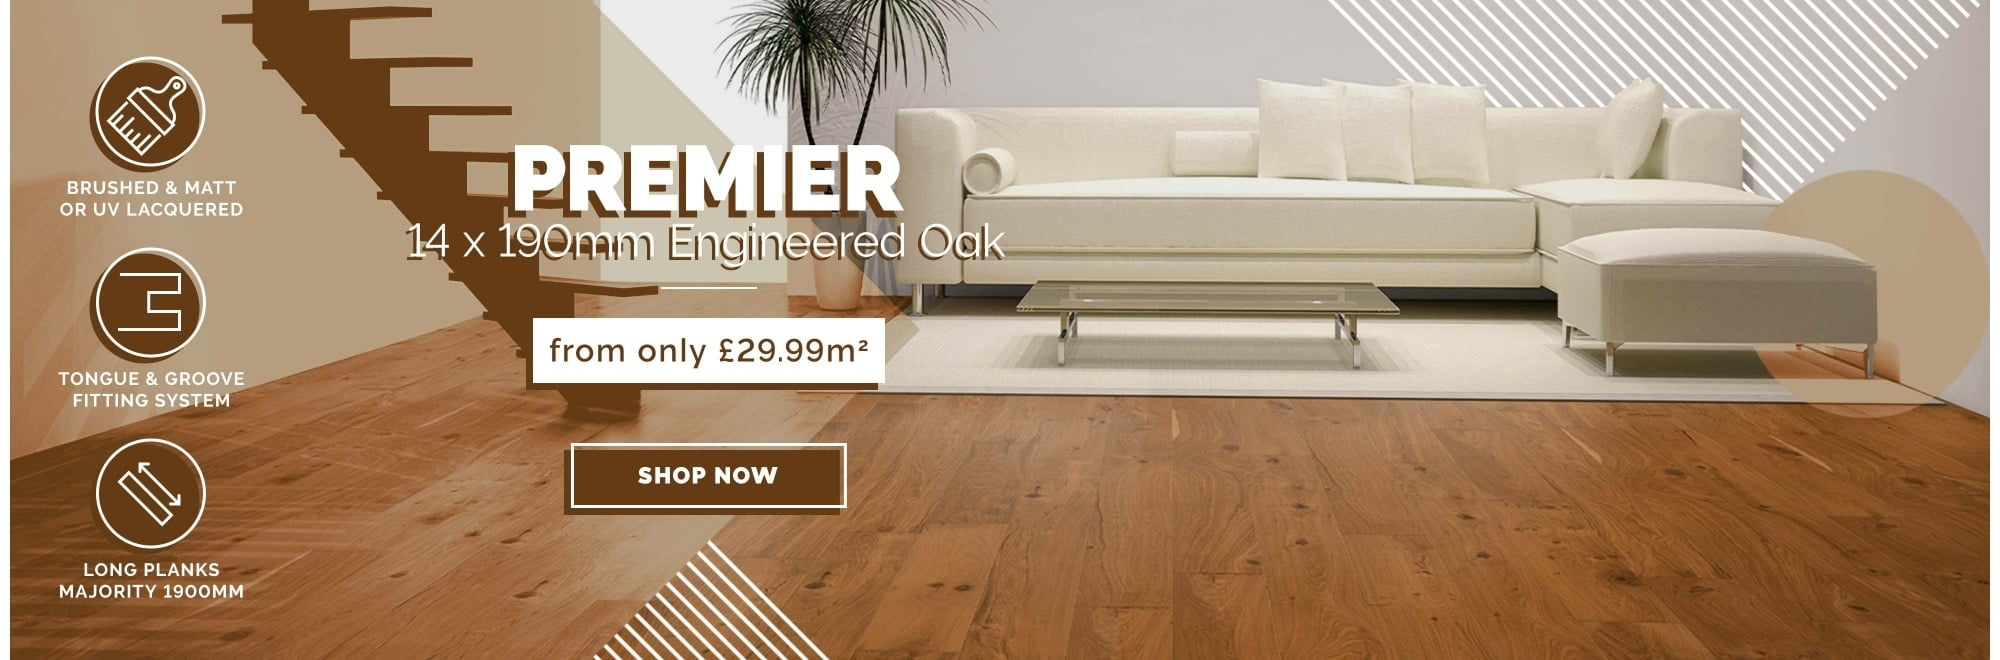 14 x 190mm Premier Engineered Oak flooring